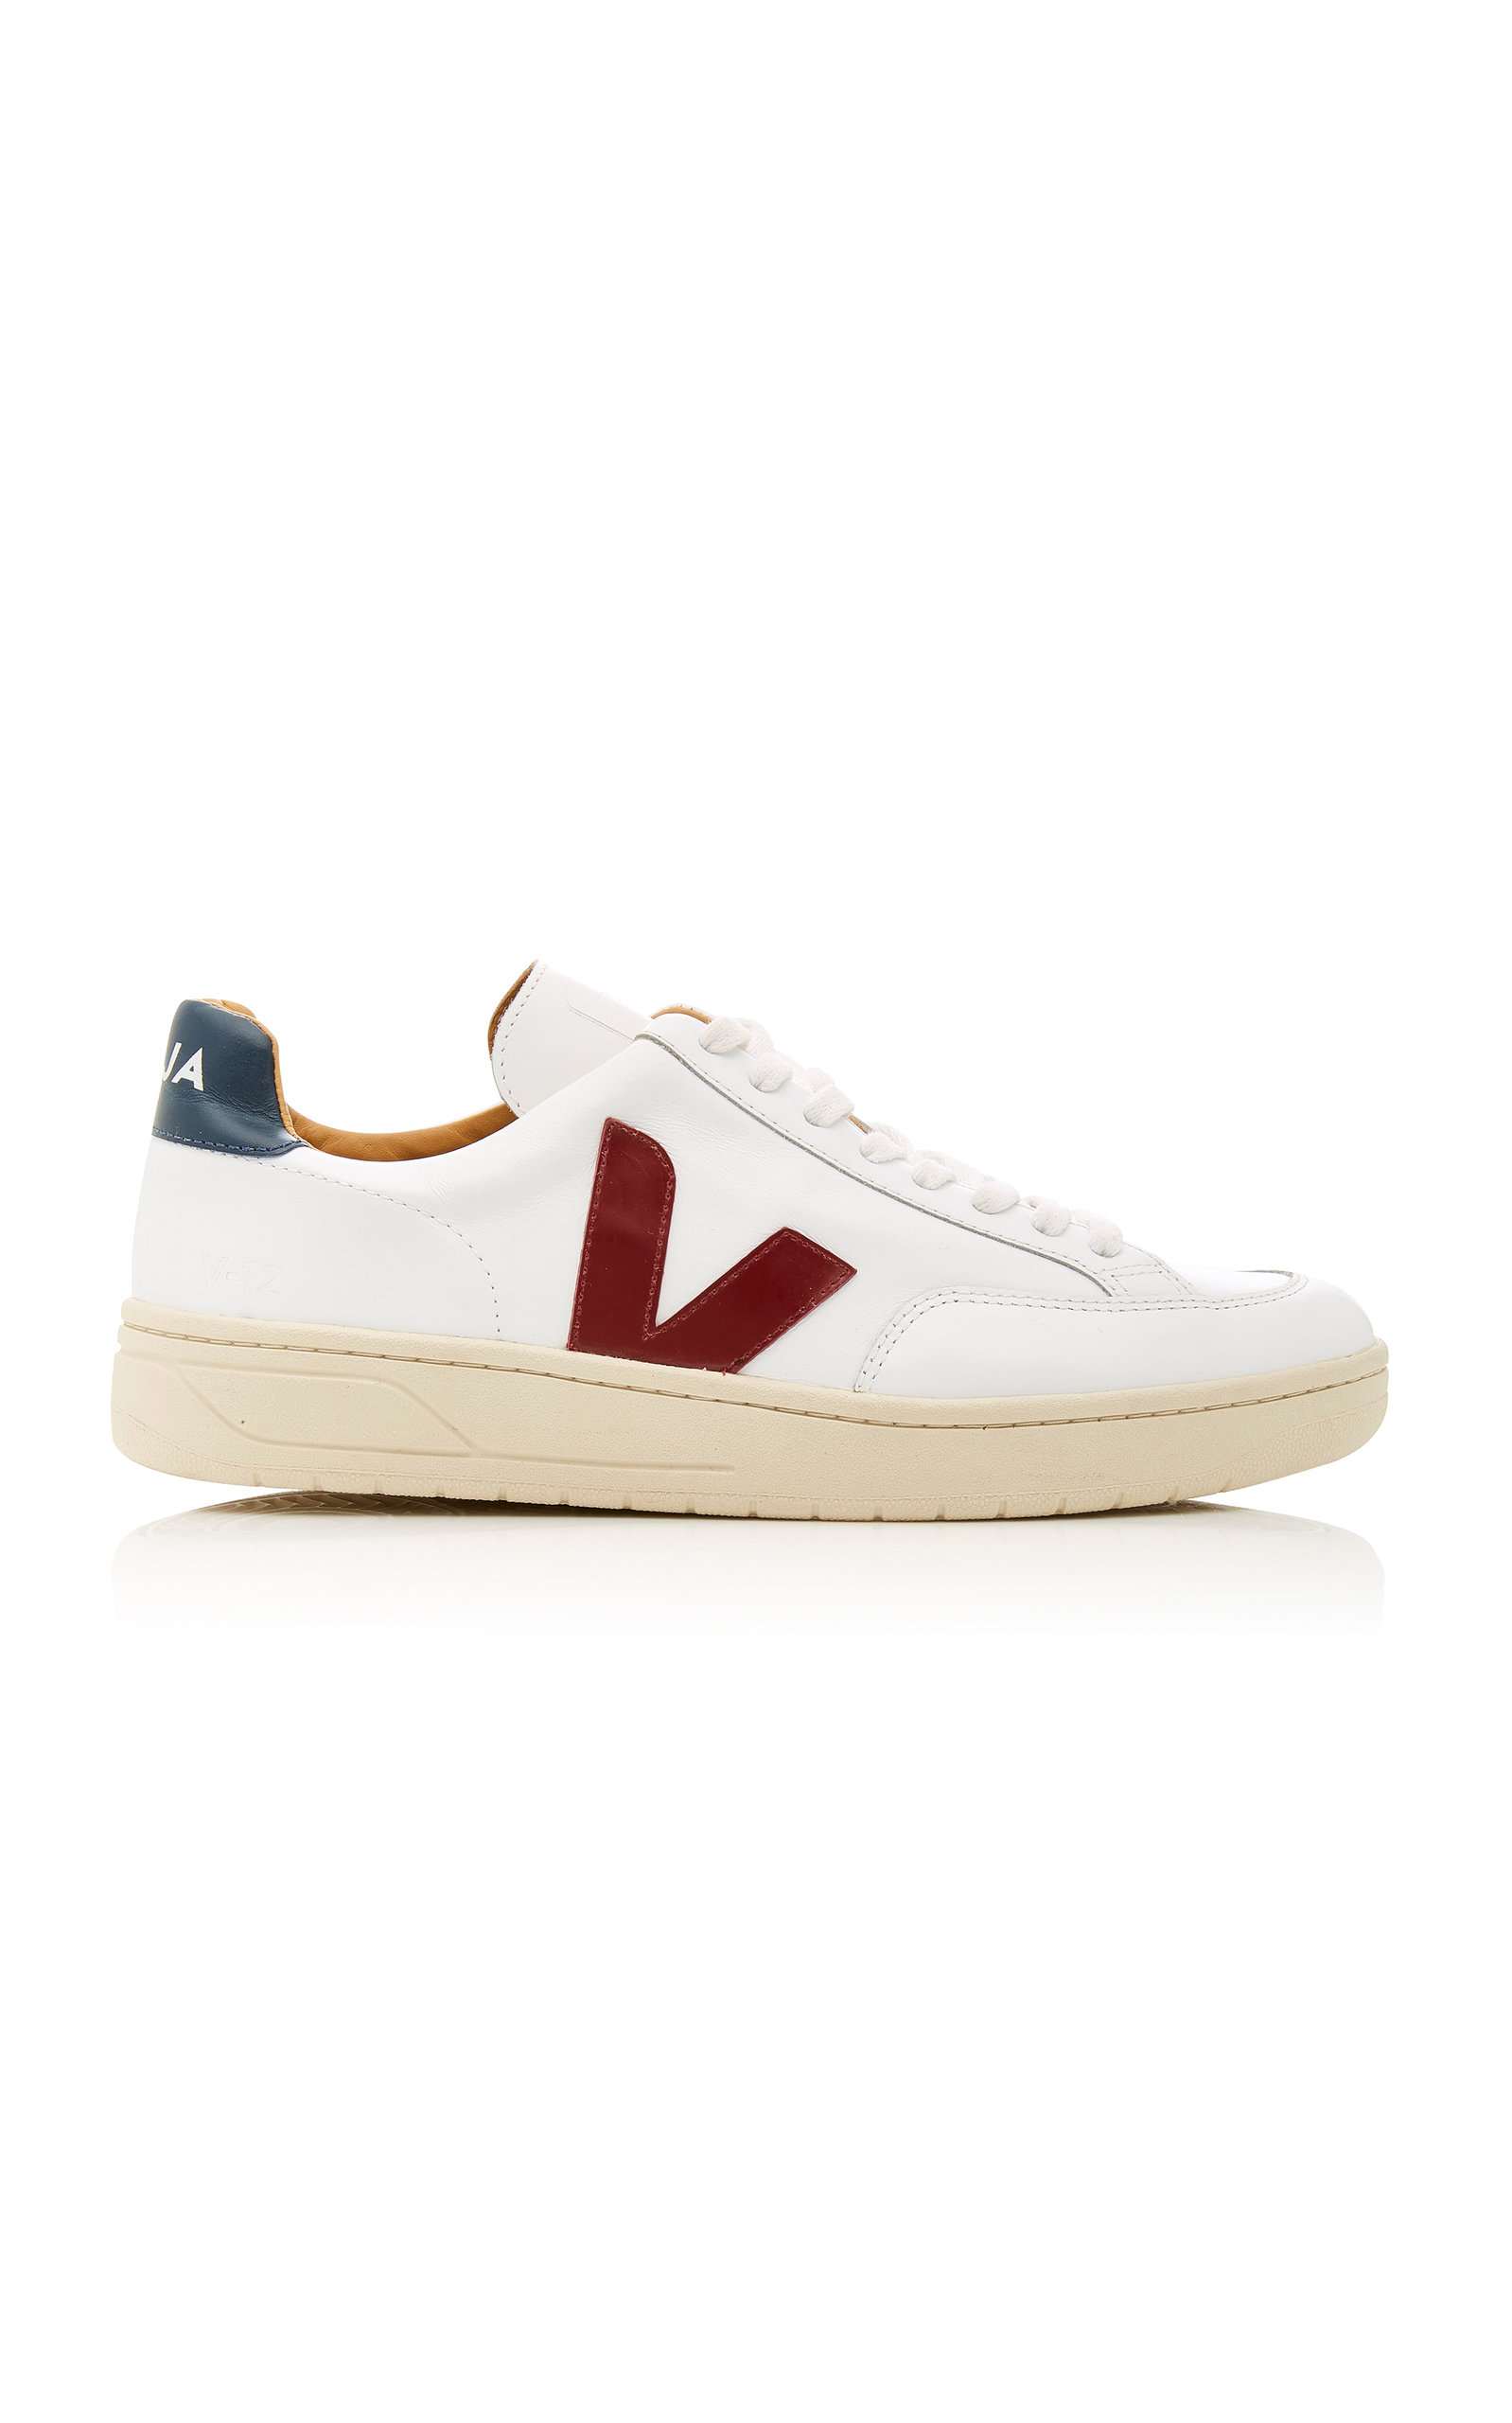 f71f773c1f Veja Small sneaker in low chrome leather | Babes.